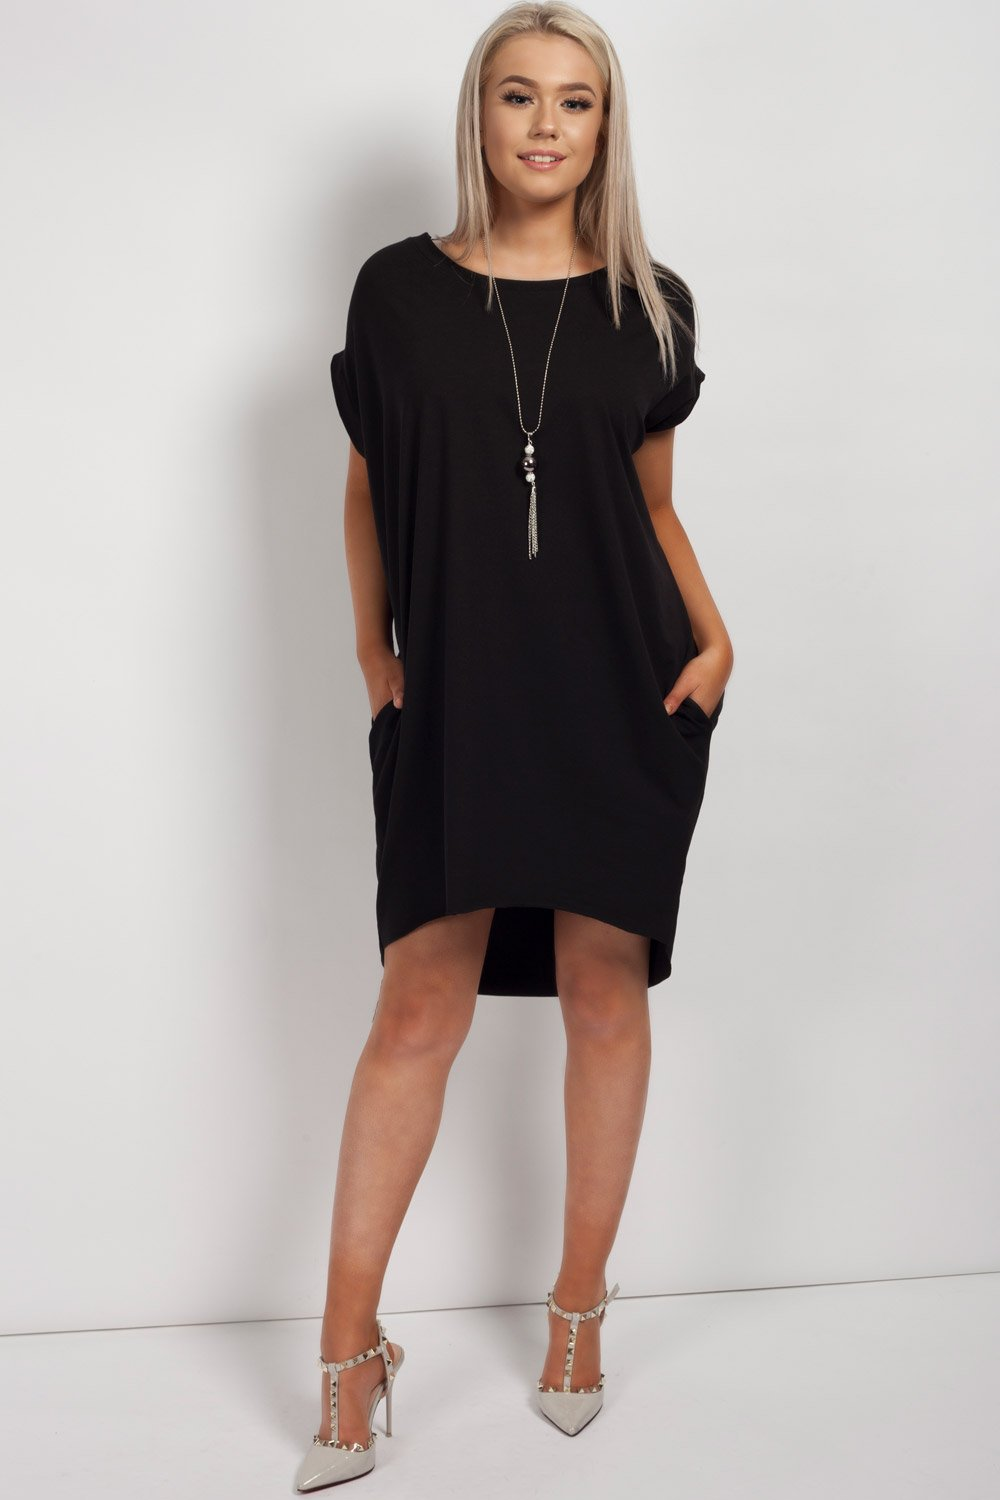 oversized black top womens